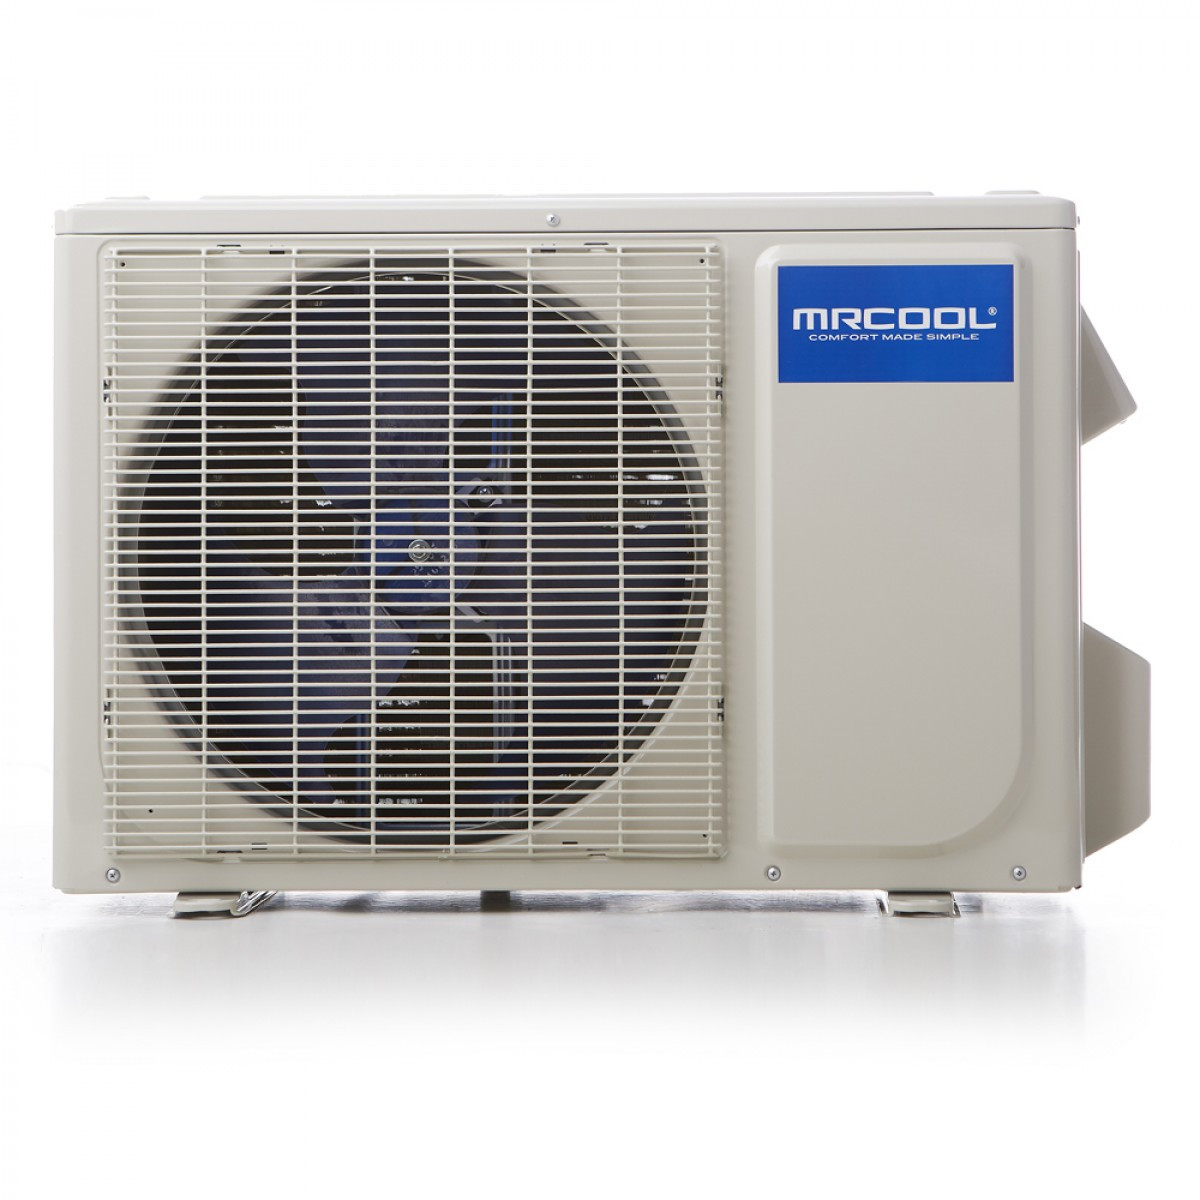 Best ideas about Mr Cool DIY Mini Split Review . Save or Pin MRCOOL Do It Yourself 18K BTU 16 SEER Heat Pump System 208 Now.